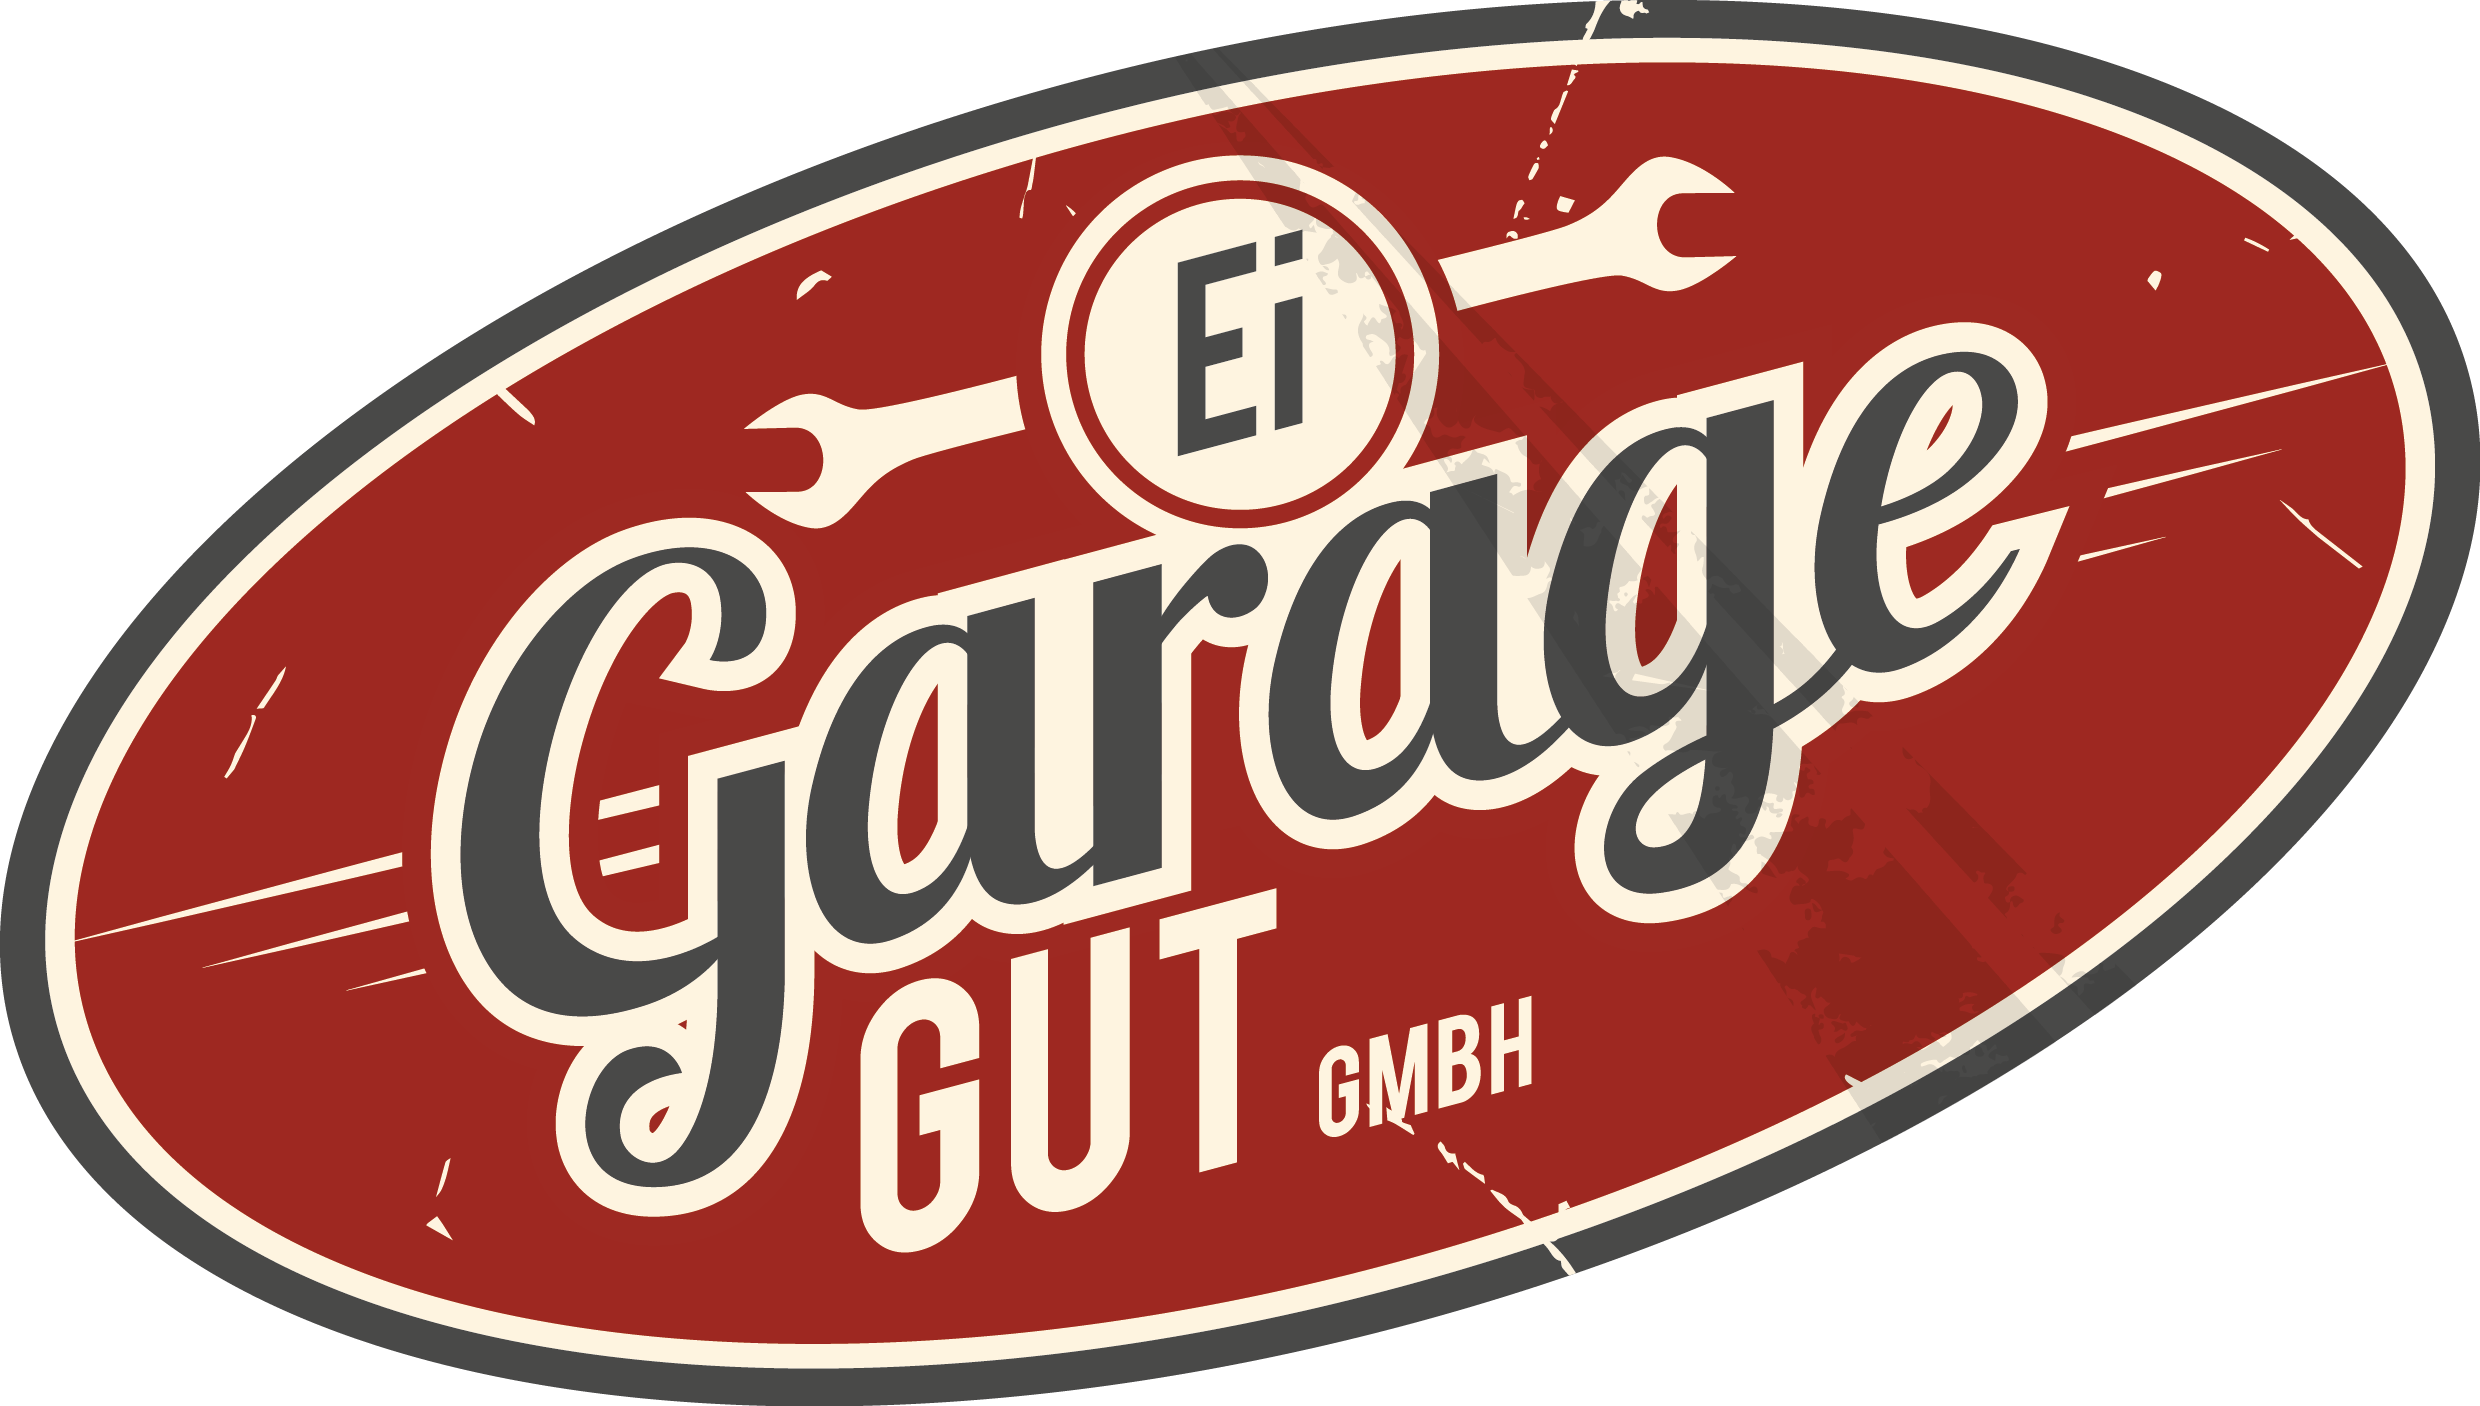 Ei Garage Gut GmbH